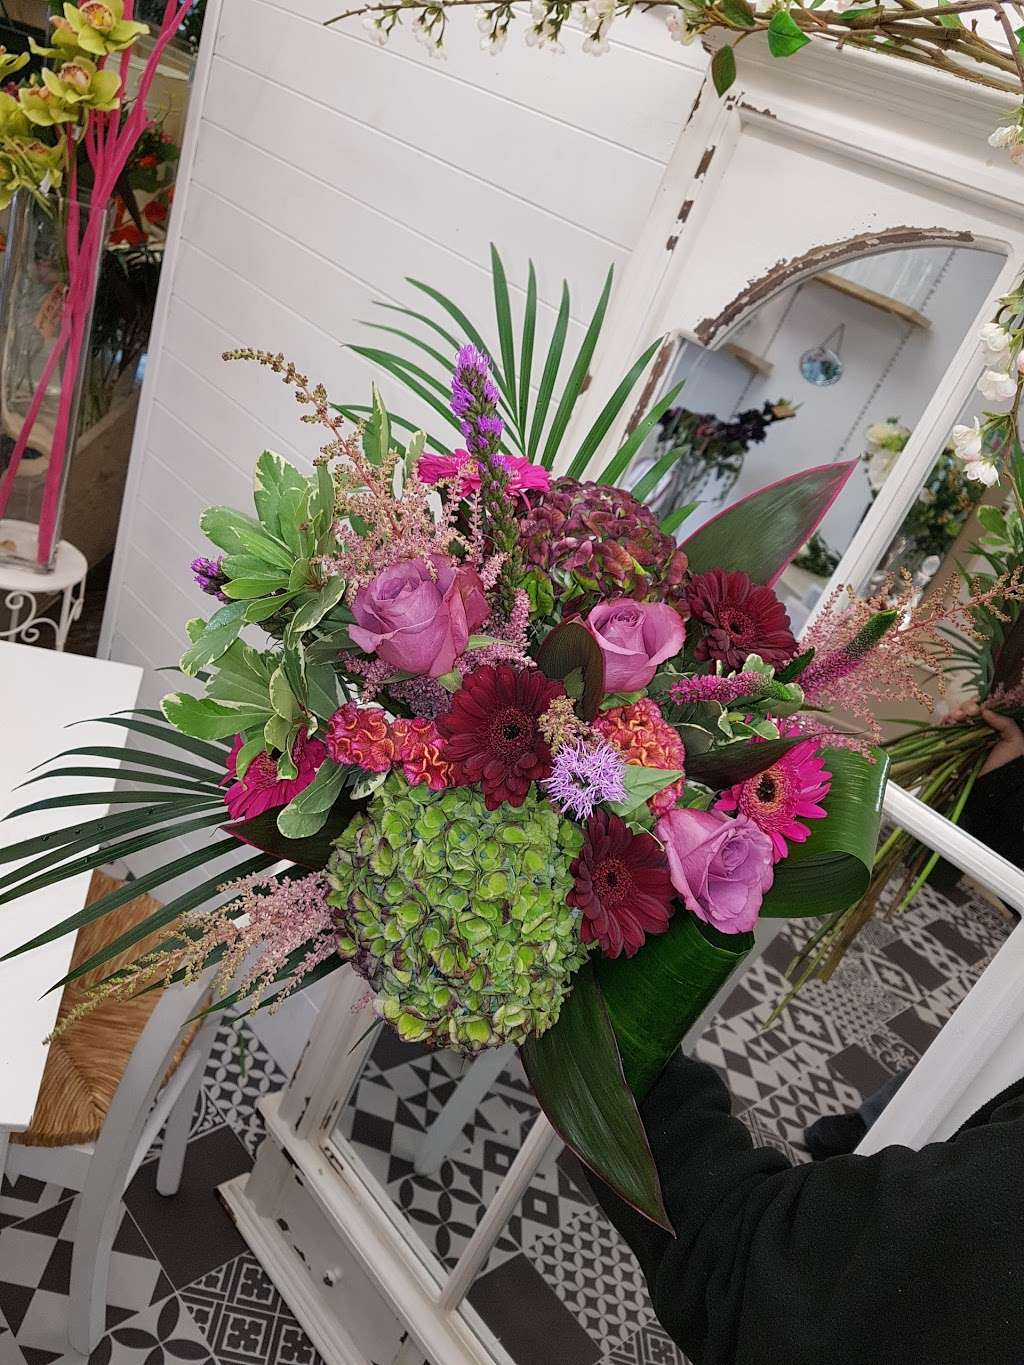 Coggers in Bloom - florist  | Photo 9 of 10 | Address: 849 Forest Rd, Walthamstow, London E17 4AT, UK | Phone: 020 8527 1051